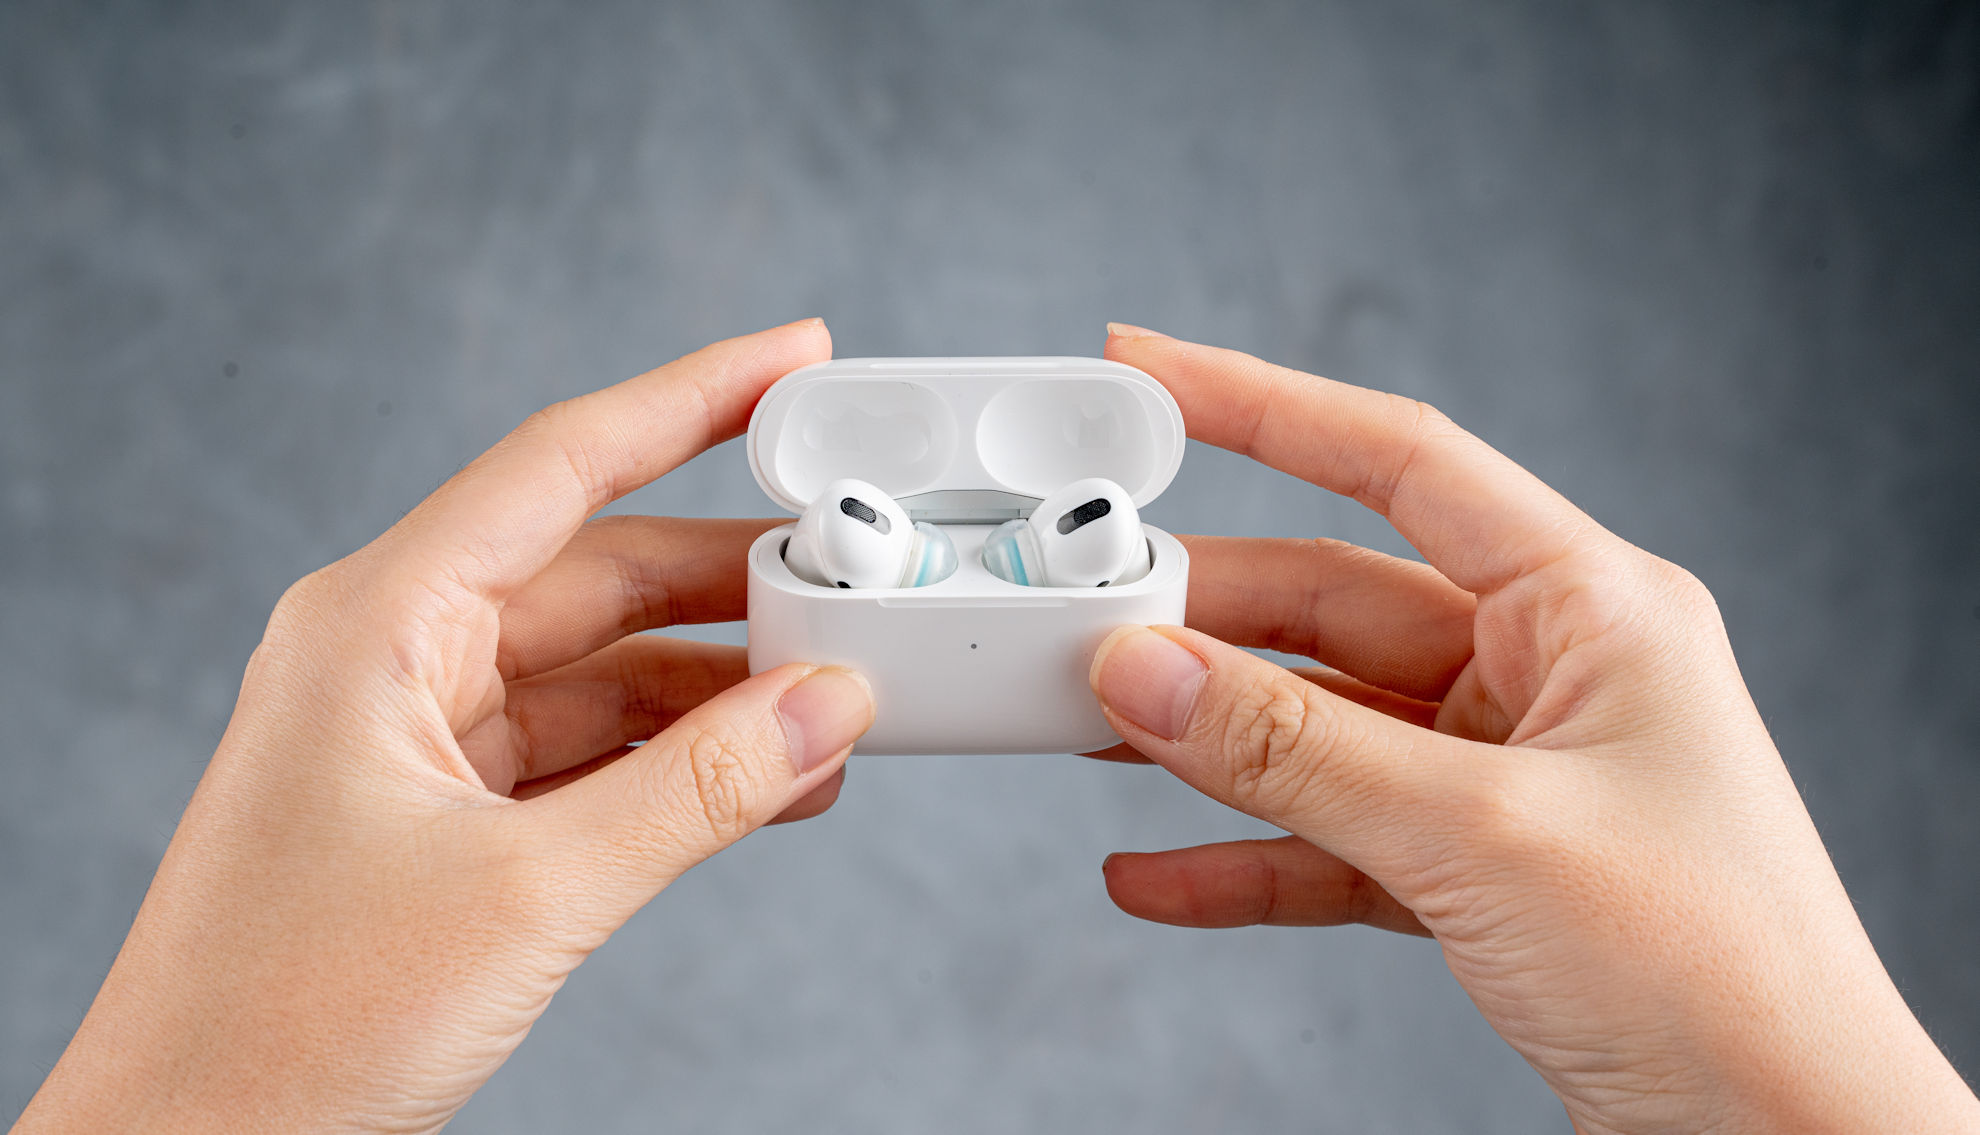 Best Ear Tip for Apple AirPods Pro - SpinFit CP1025 Review